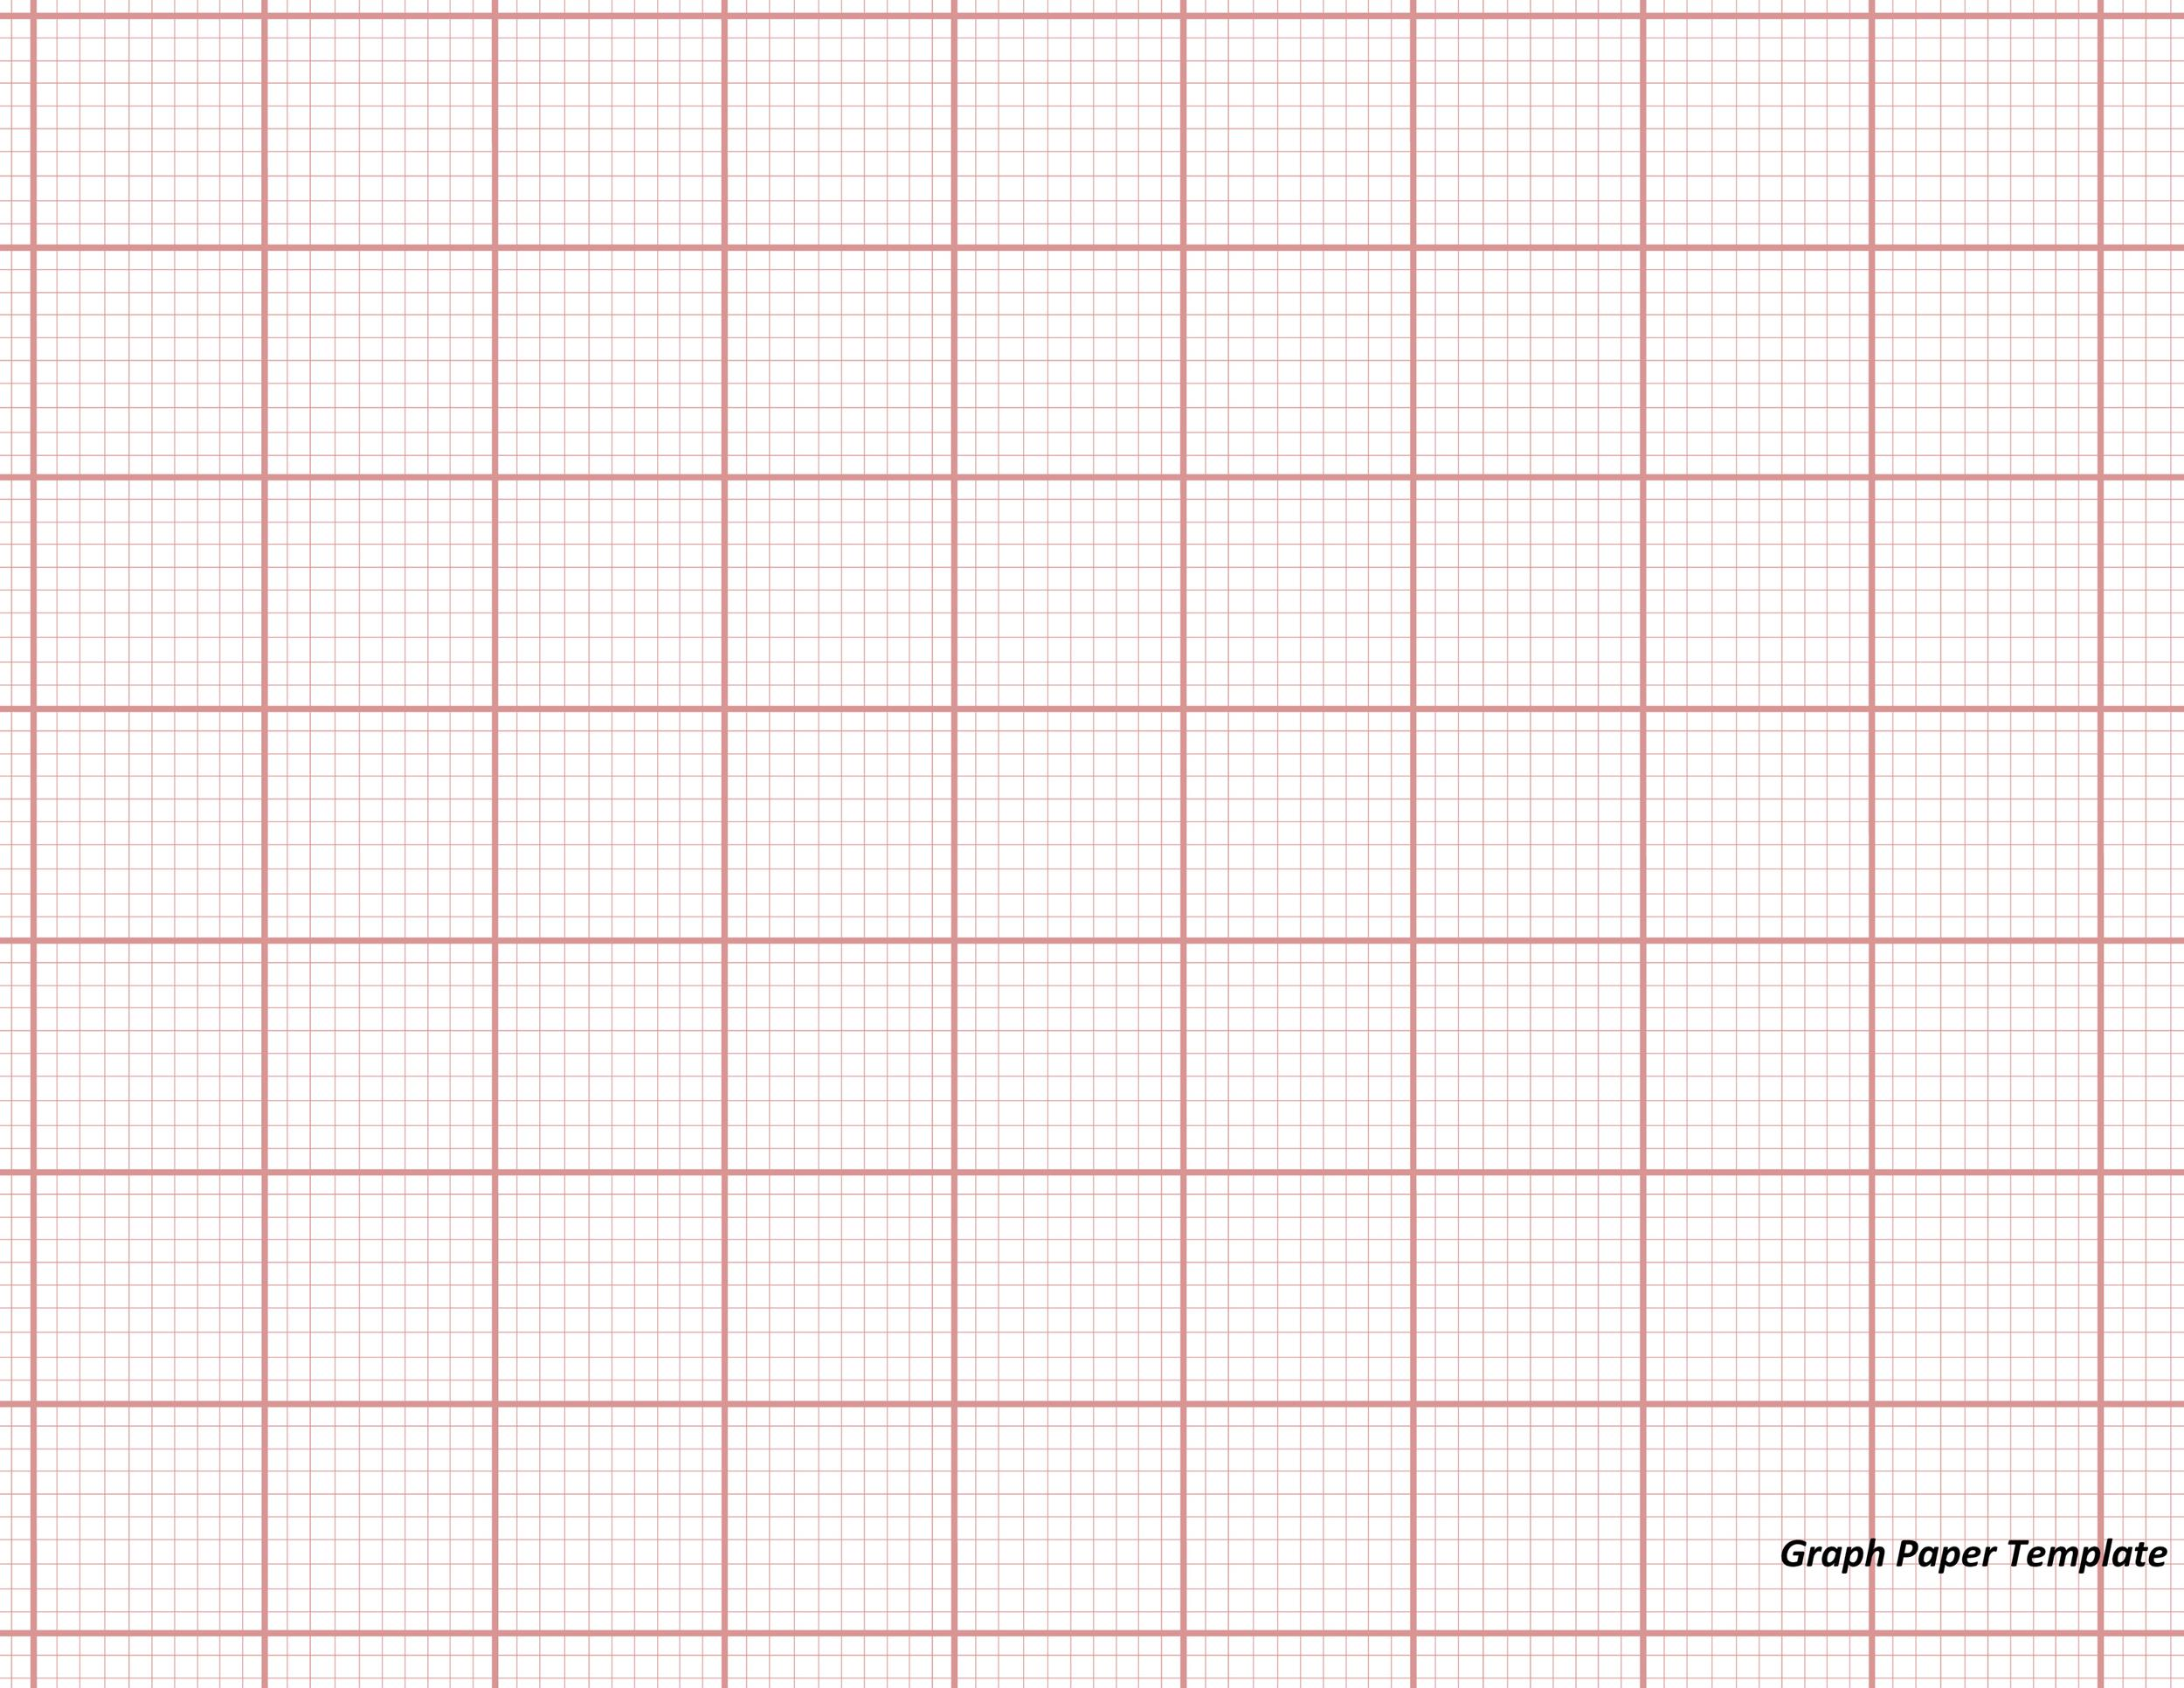 30+ Free Printable Graph Paper Templates (Word, PDF) - Template Lab - making graph paper in word